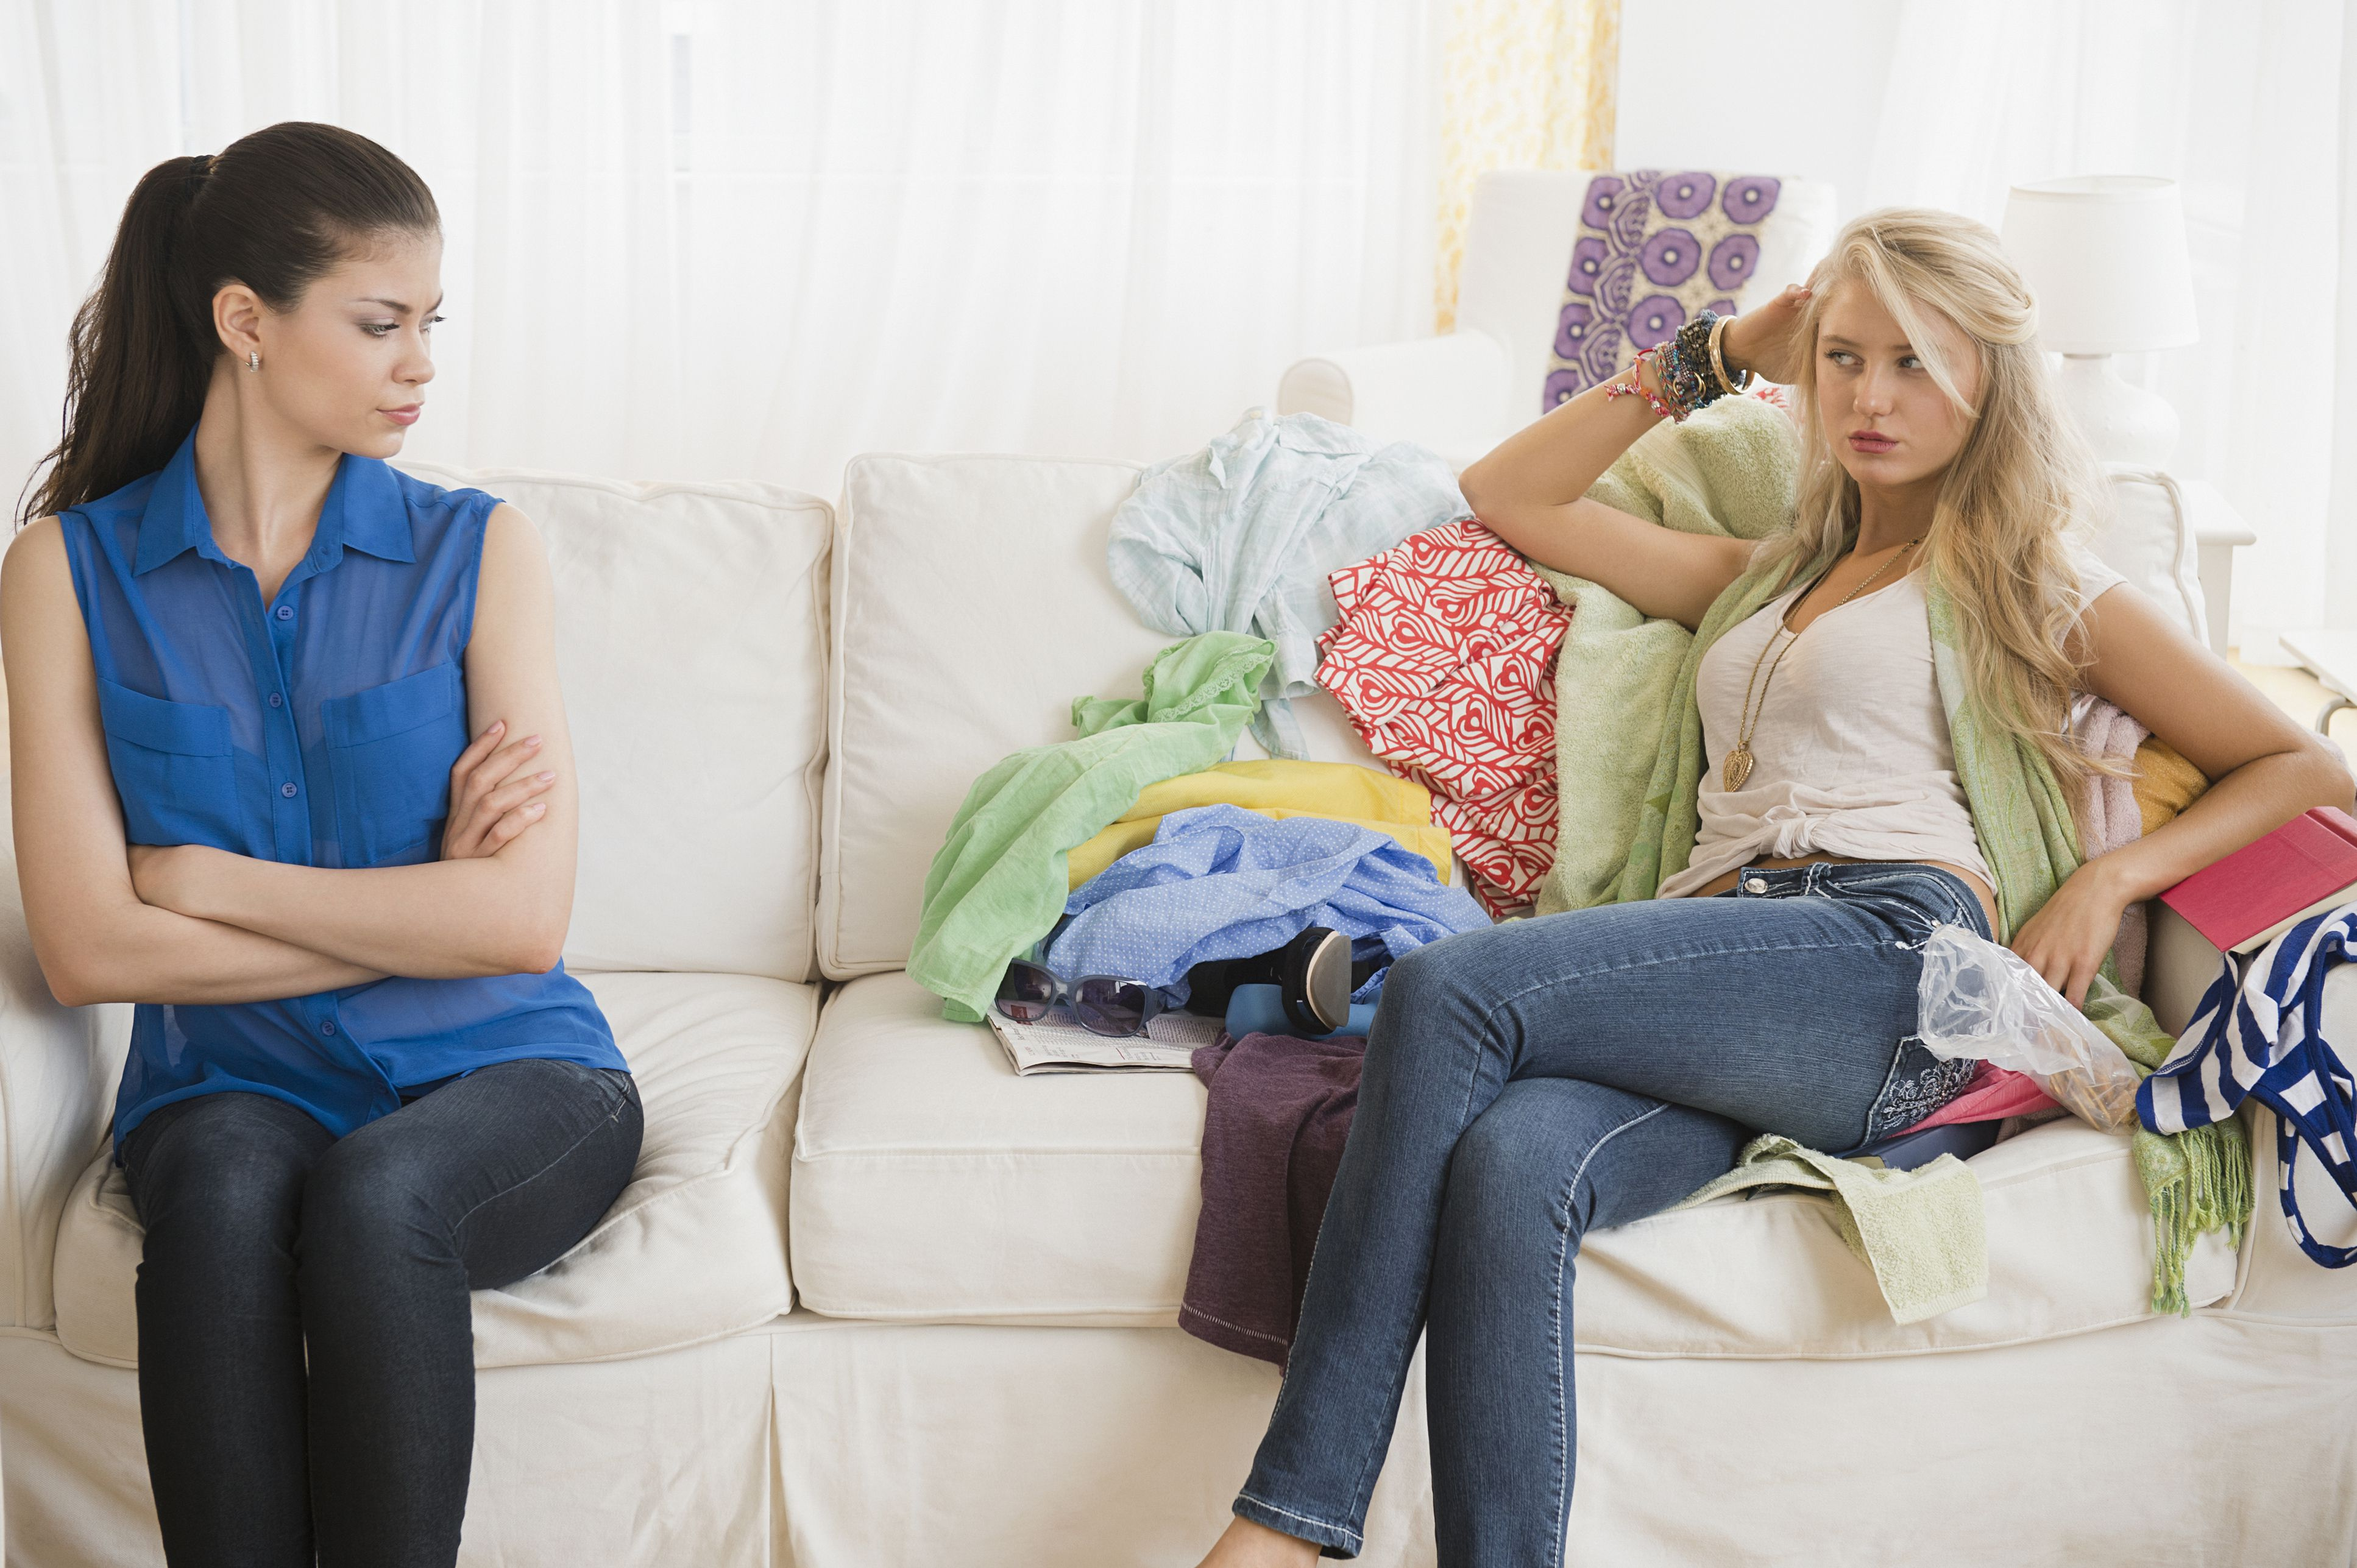 Neat woman unhappy with a messy roommate